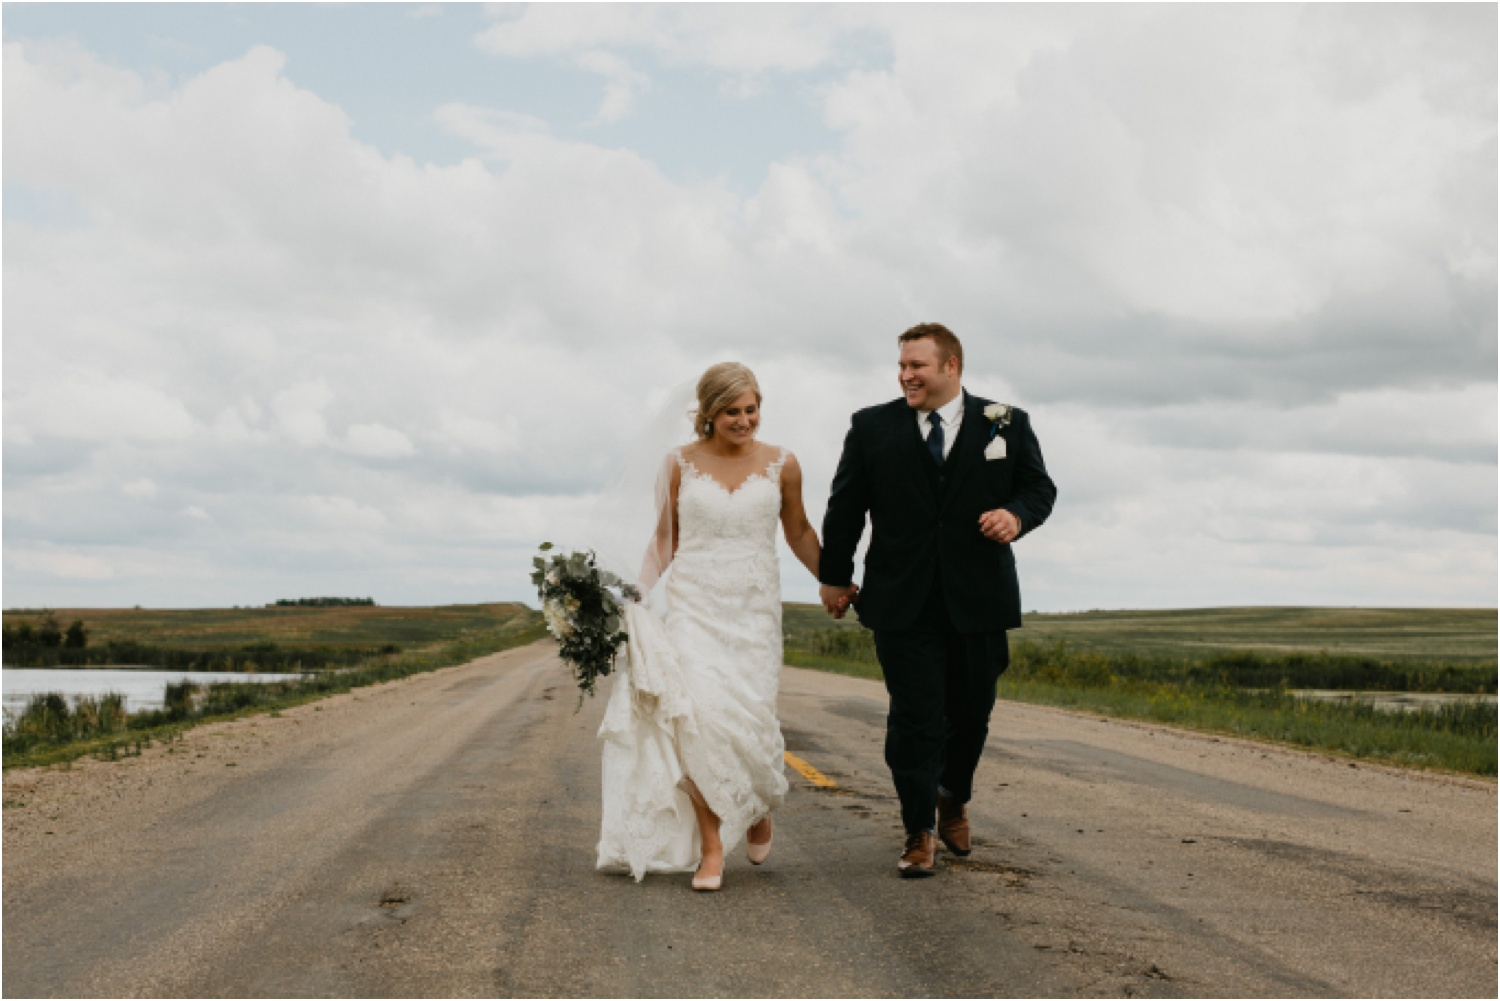 Kailey_Carter_Saskatchewan_Wedding (351 of 727).jpg